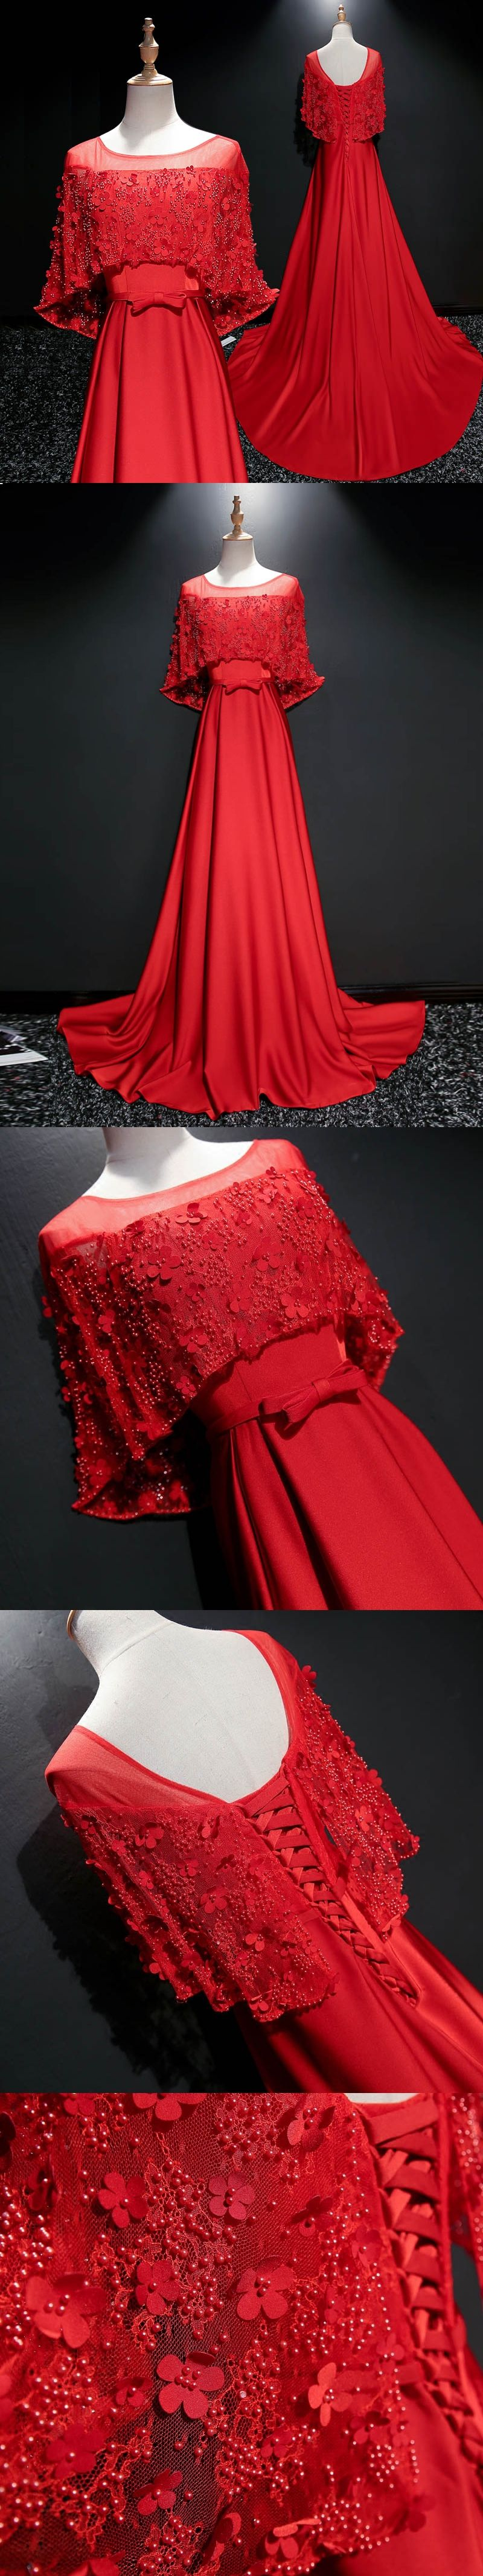 Red prom dresses aline scoop sweep train satin lace beautiful long